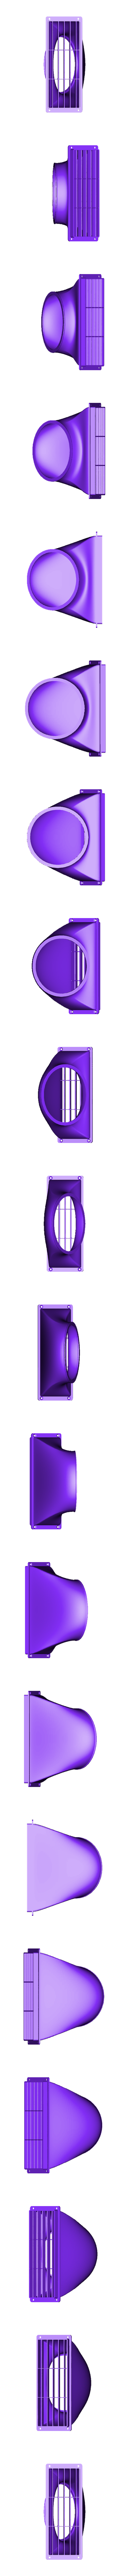 BoucheEvacuationClimatiseurMobil.stl Download free STL file Mobile air conditioner vent • Object to 3D print, uhgues